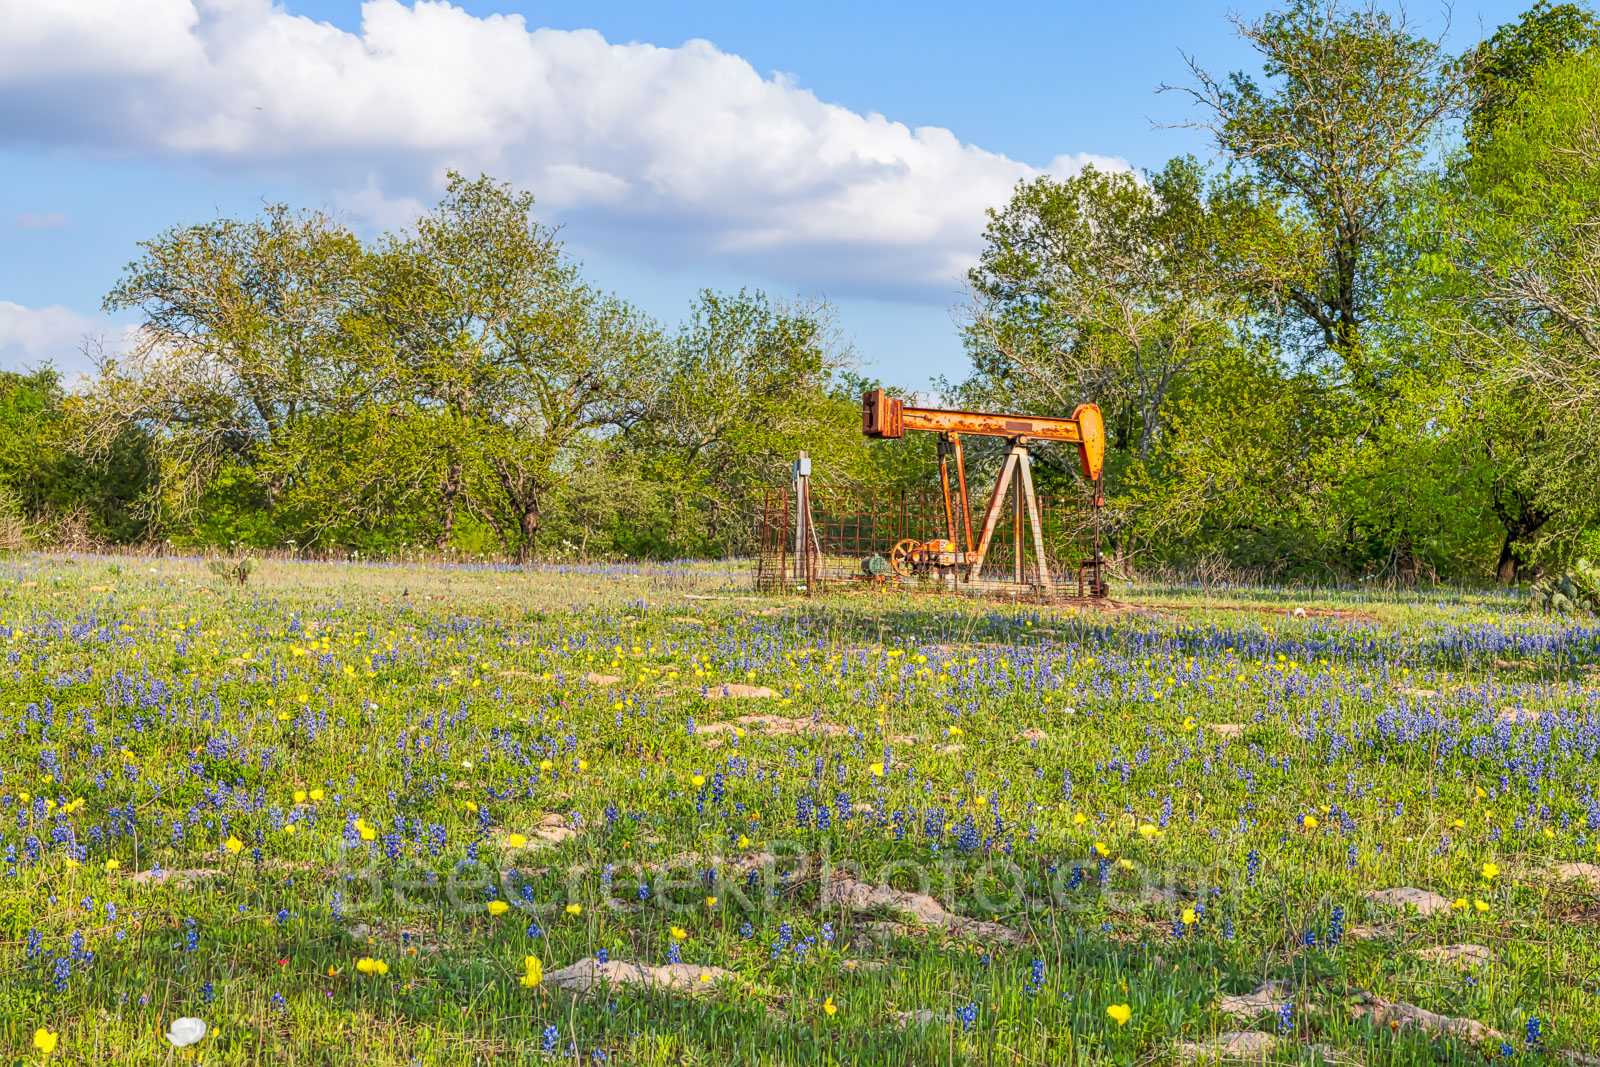 Oil Derrick and Wildflowers - Oil derrick with bluebonnets and yellow buttercup wildflowers in Texas. Who say they can't work...